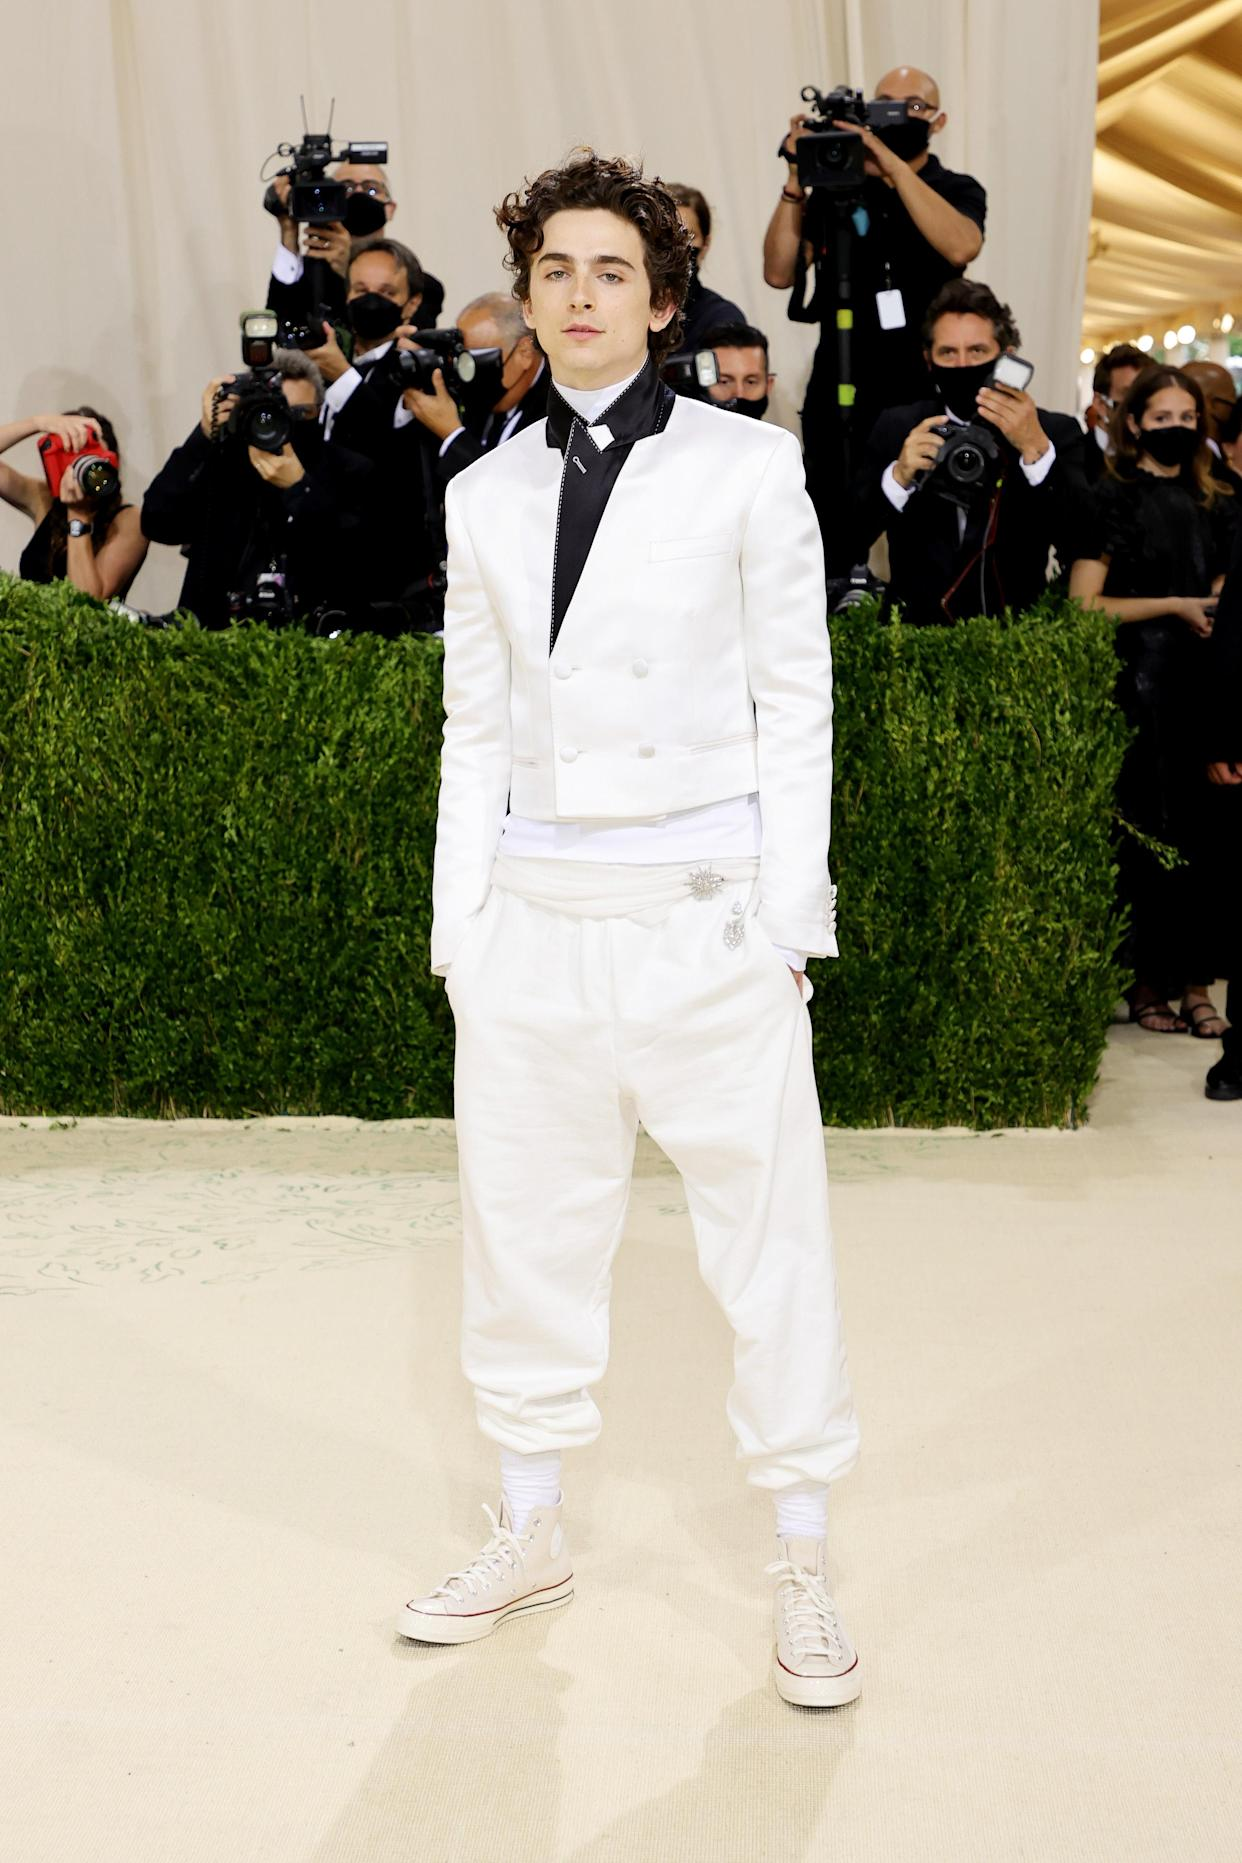 Co-chair Timothee Chalamet attends The 2021 Met Gala Celebrating In America: A Lexicon Of Fashion at Metropolitan Museum of Art on September 13, 2021 in New York City. (Getty Images)